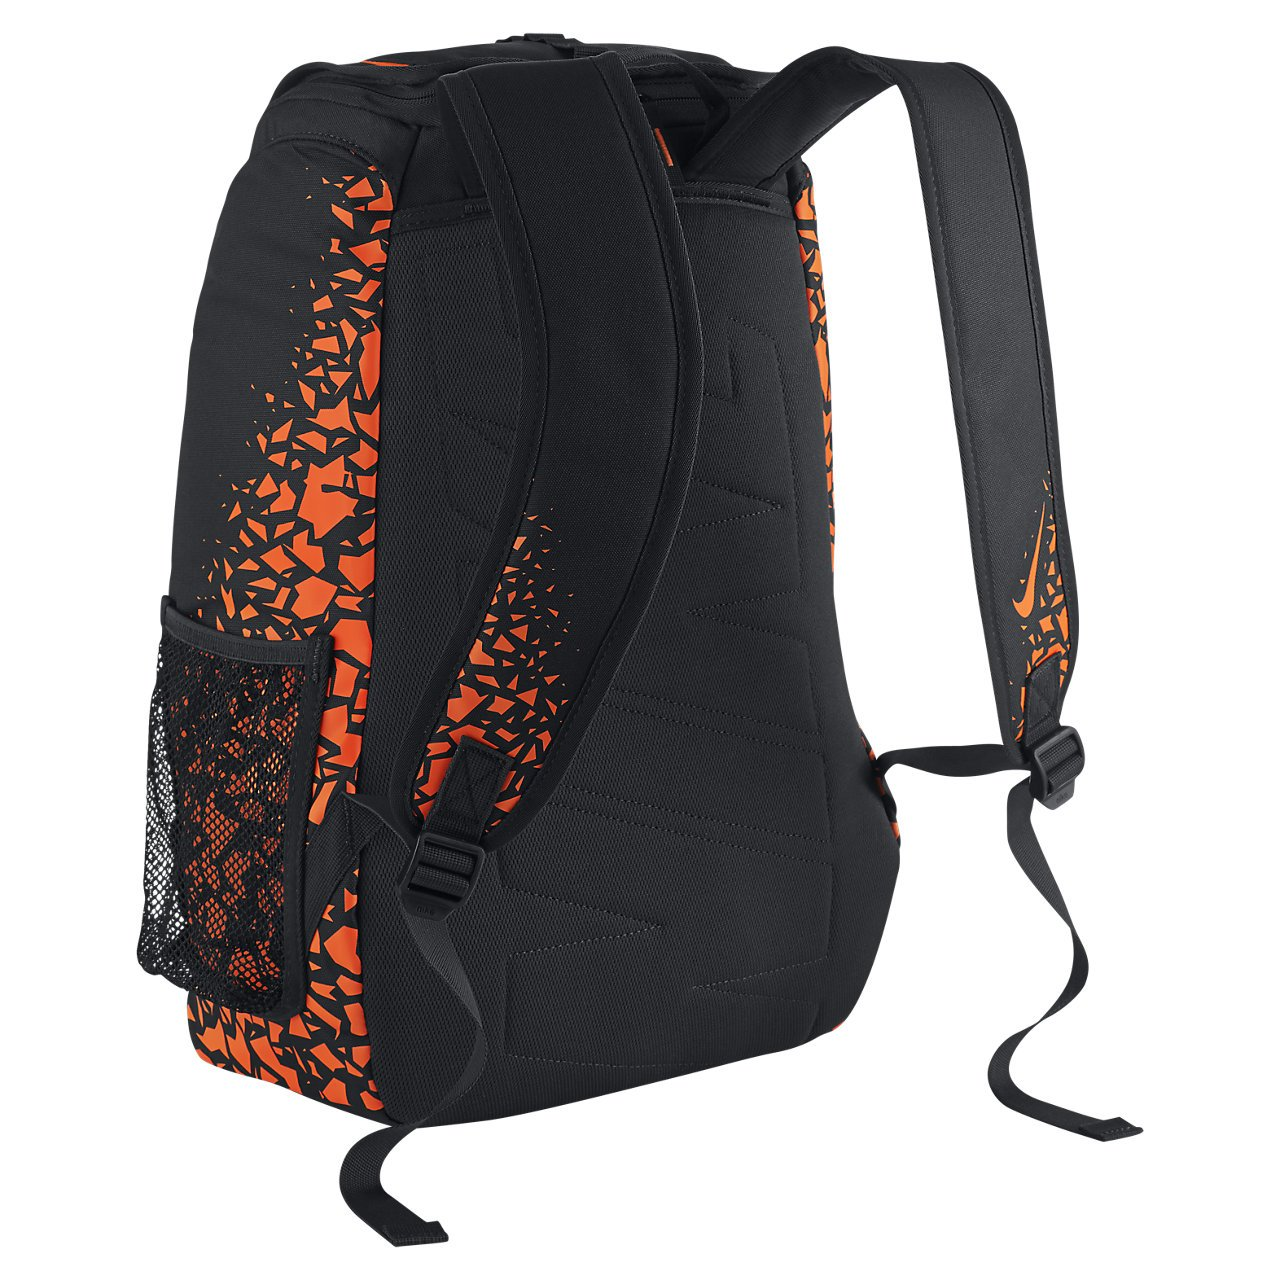 ed08a8ef3 Nike Shield Standard Backpack Remote Control HyperV, - charcoal, 50 x 25 x  5 cm, 5 Liter, BA5125 008: Amazon.co.uk: Sports & Outdoors